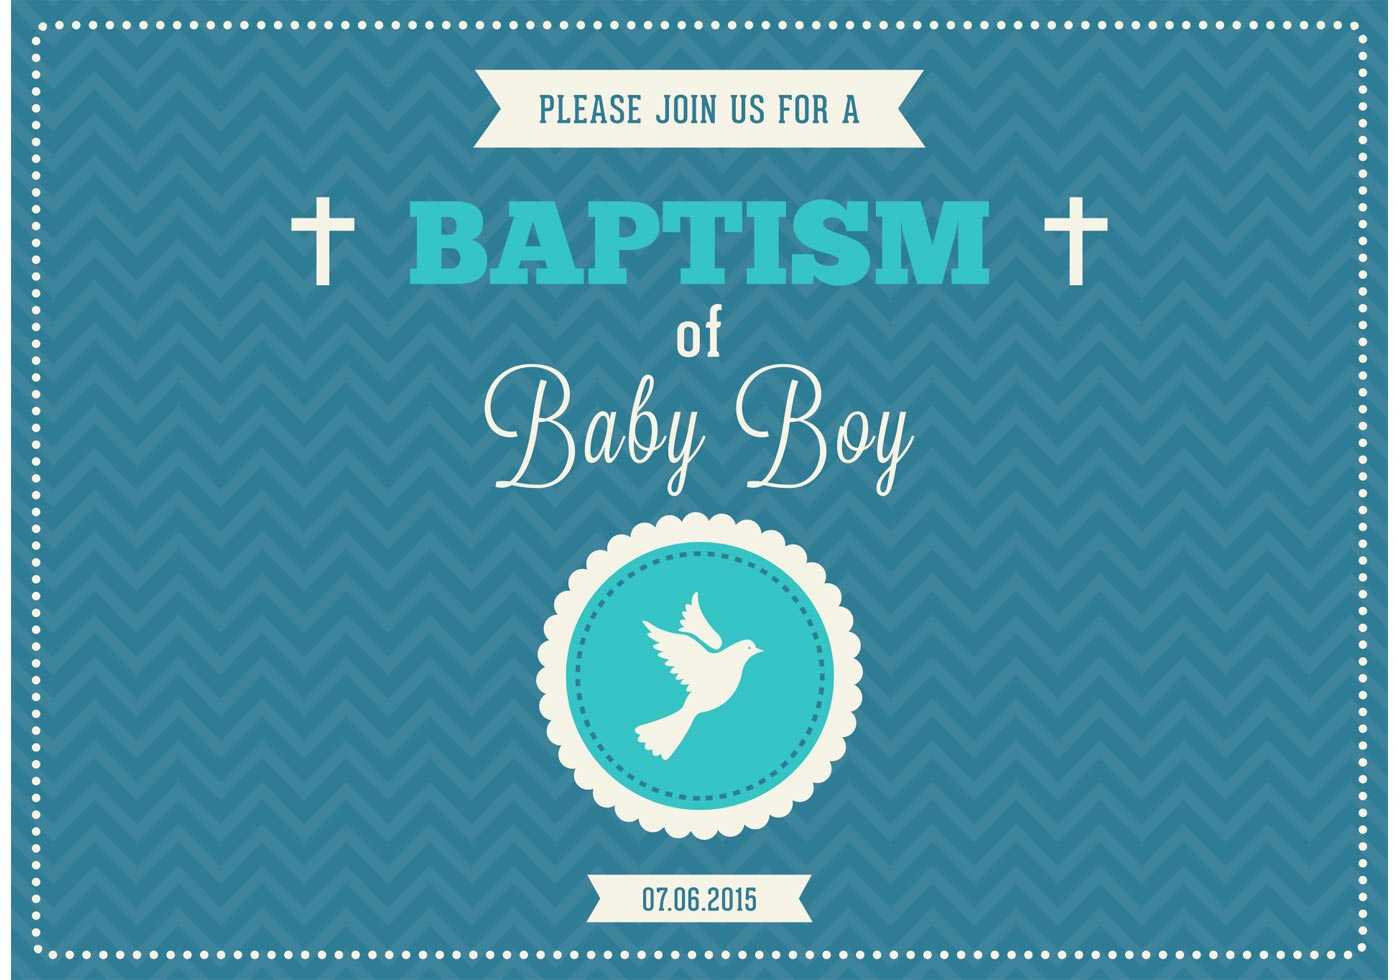 Baby Boy Baptism Vector Invitation – Download Free Vectors With Christening Banner Template Free